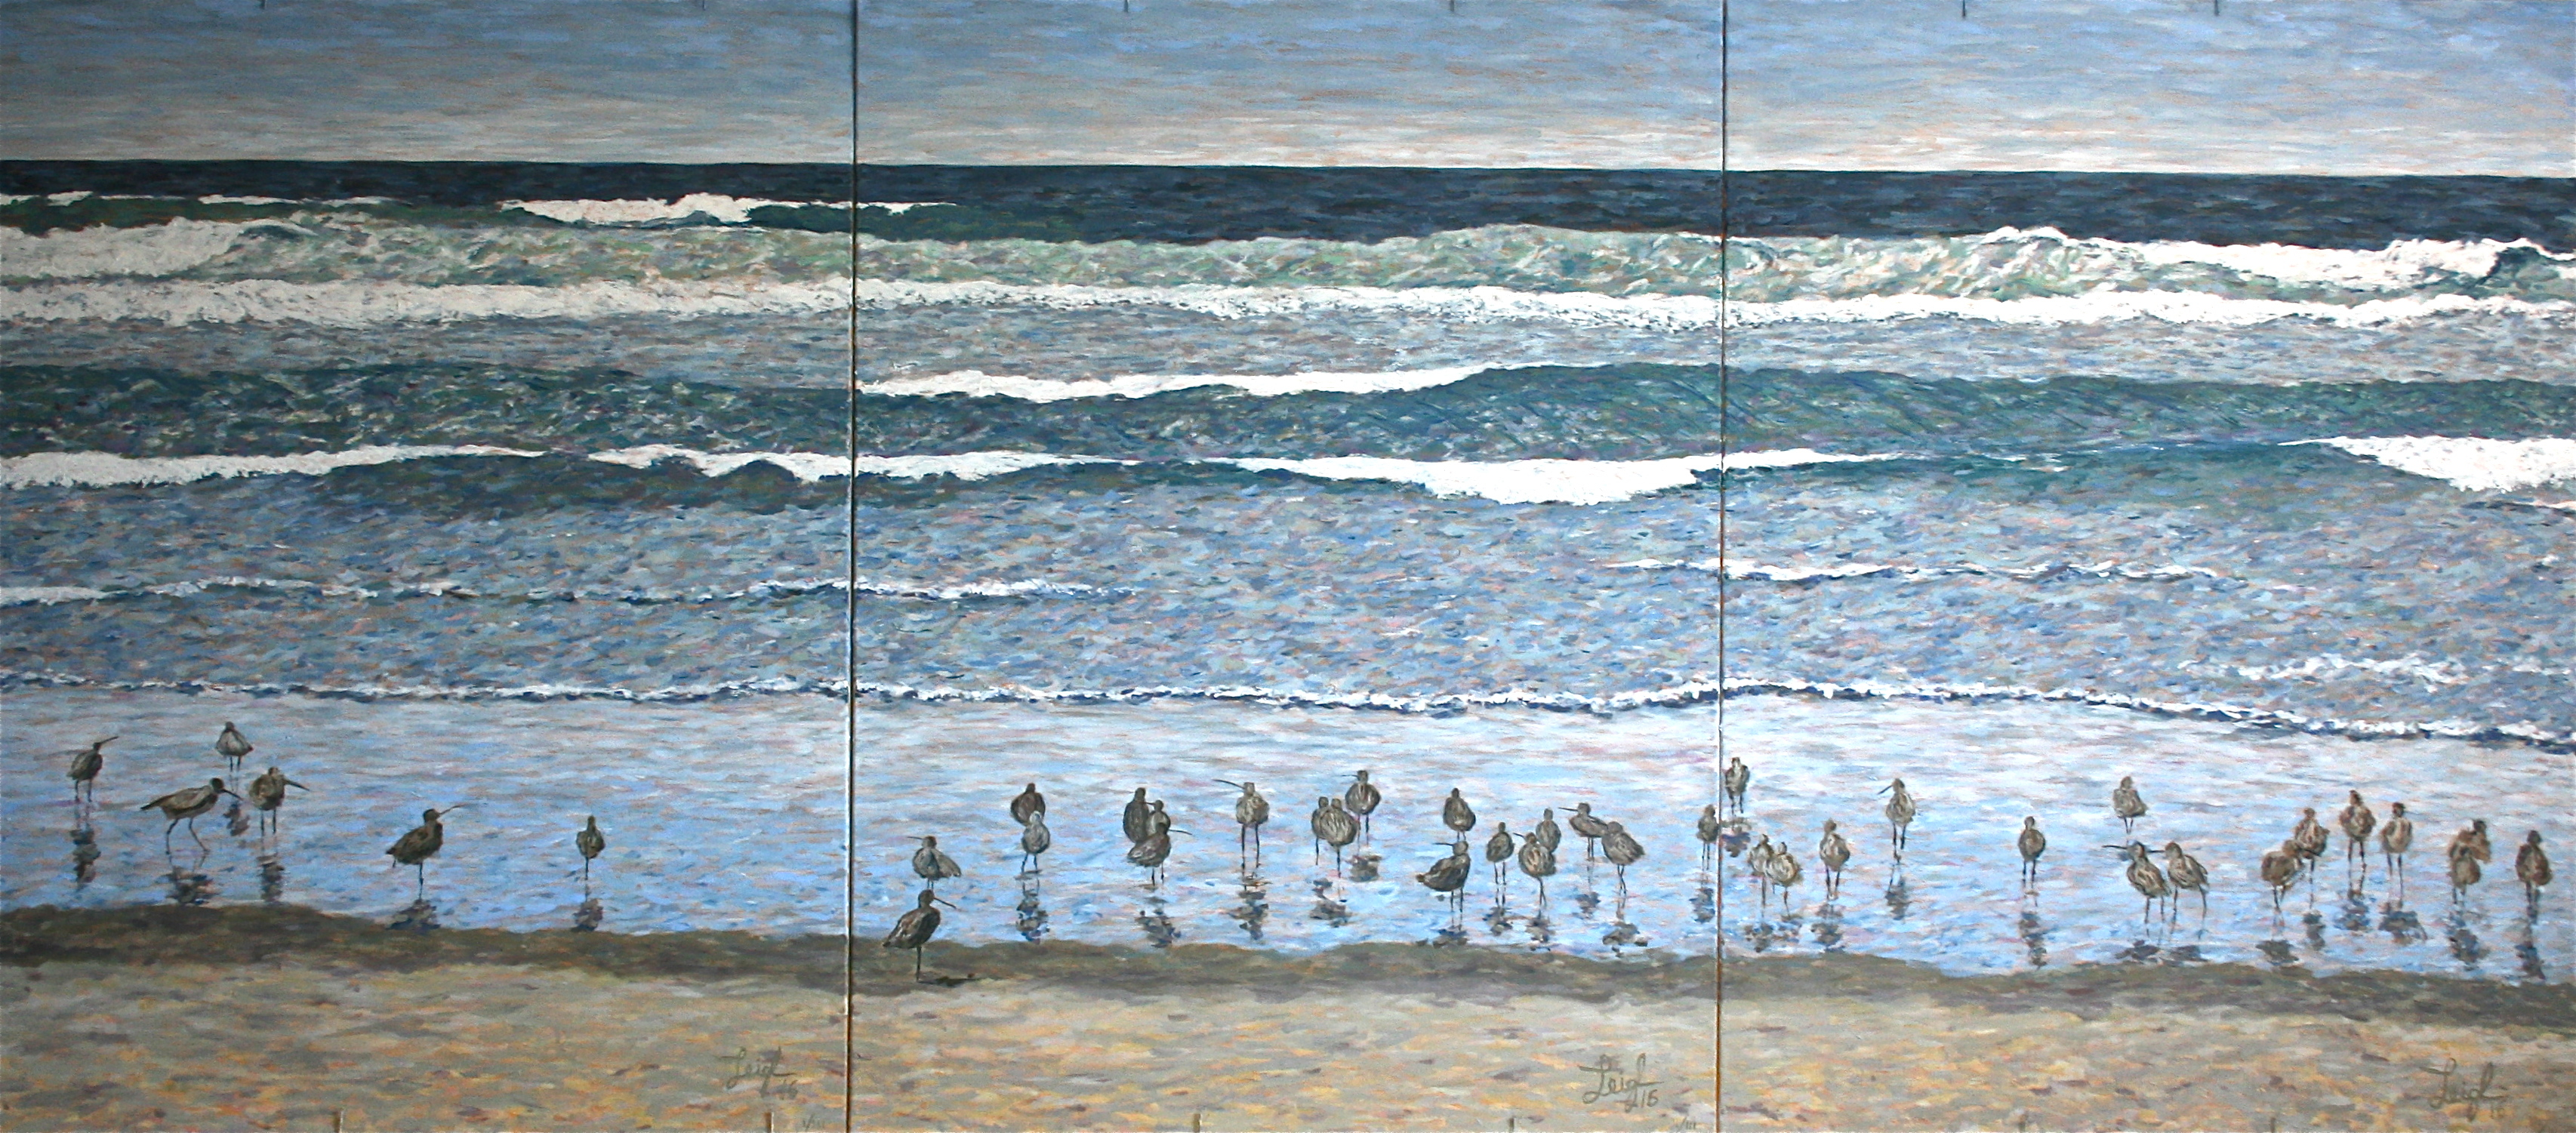 Birds on Beach Triptych  ~   Neil Cohn, Tilburg, The Netherlands 2016  •  108 x 48